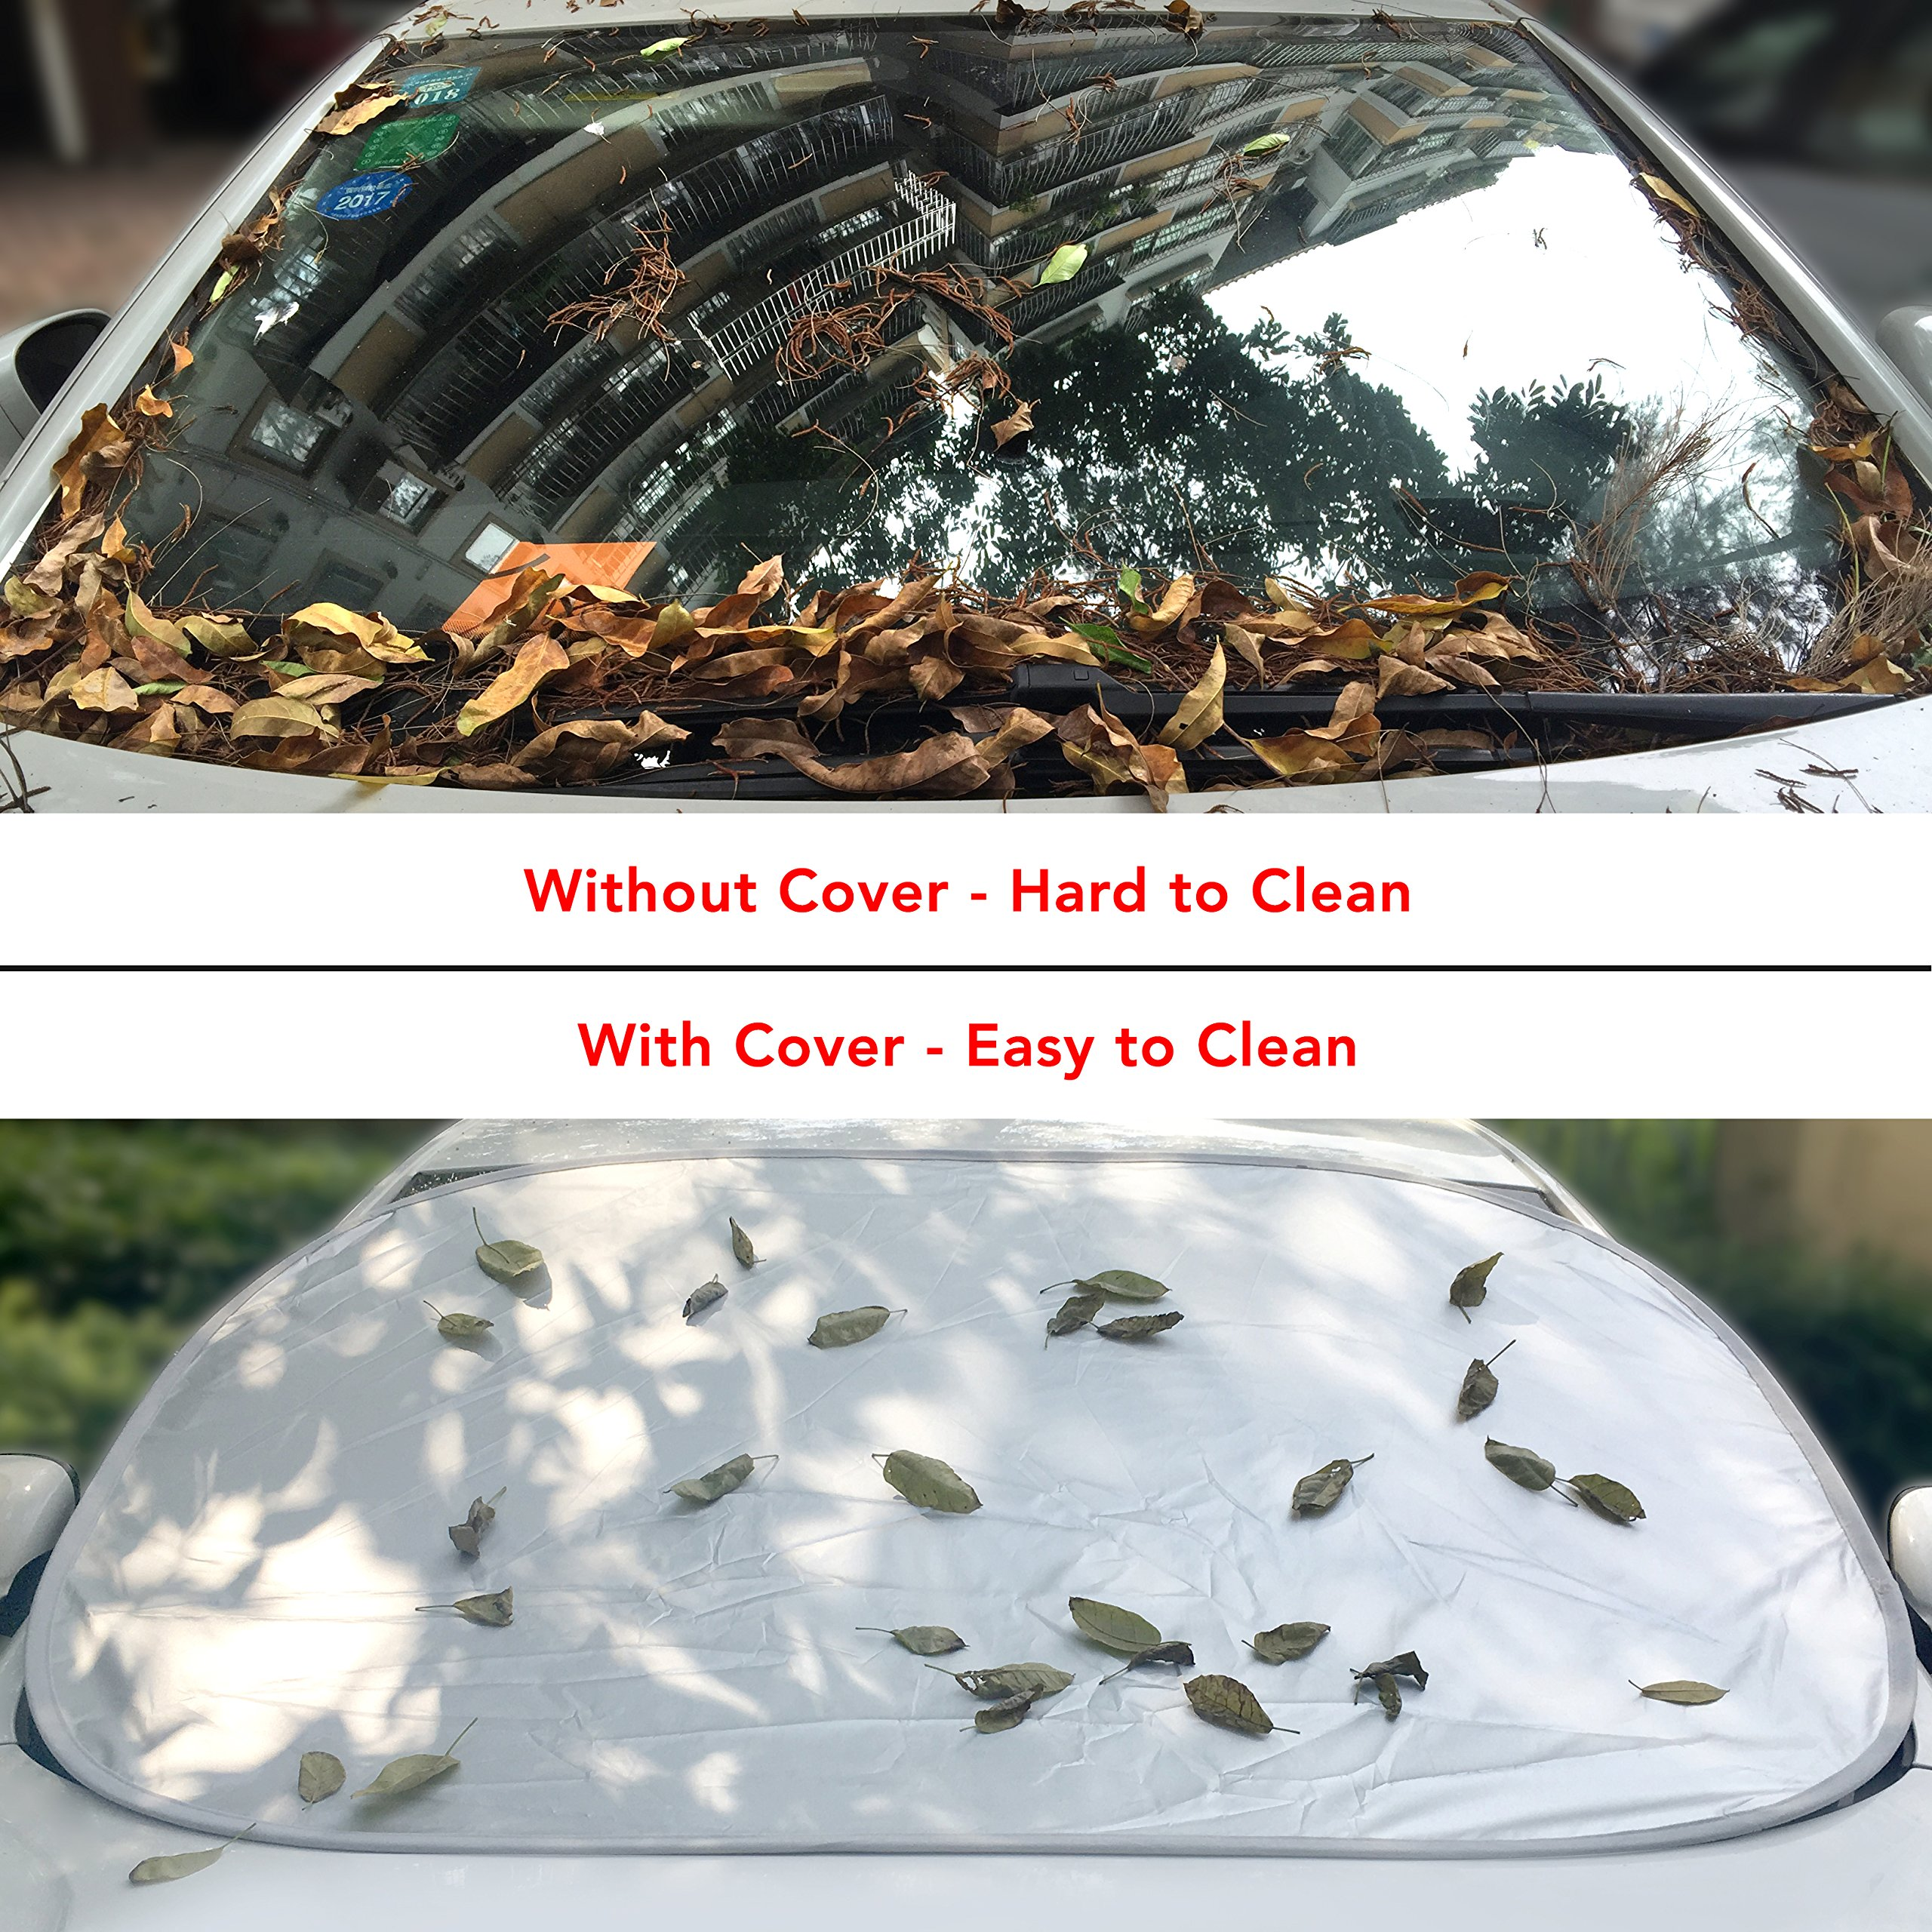 Lykus Car Windshield Cover, Snow Cover, Sun Shades, Protect Against Fallen Leaves and Others, Quick Setup and Fold within 5 Seconds, 58 x 43 inch